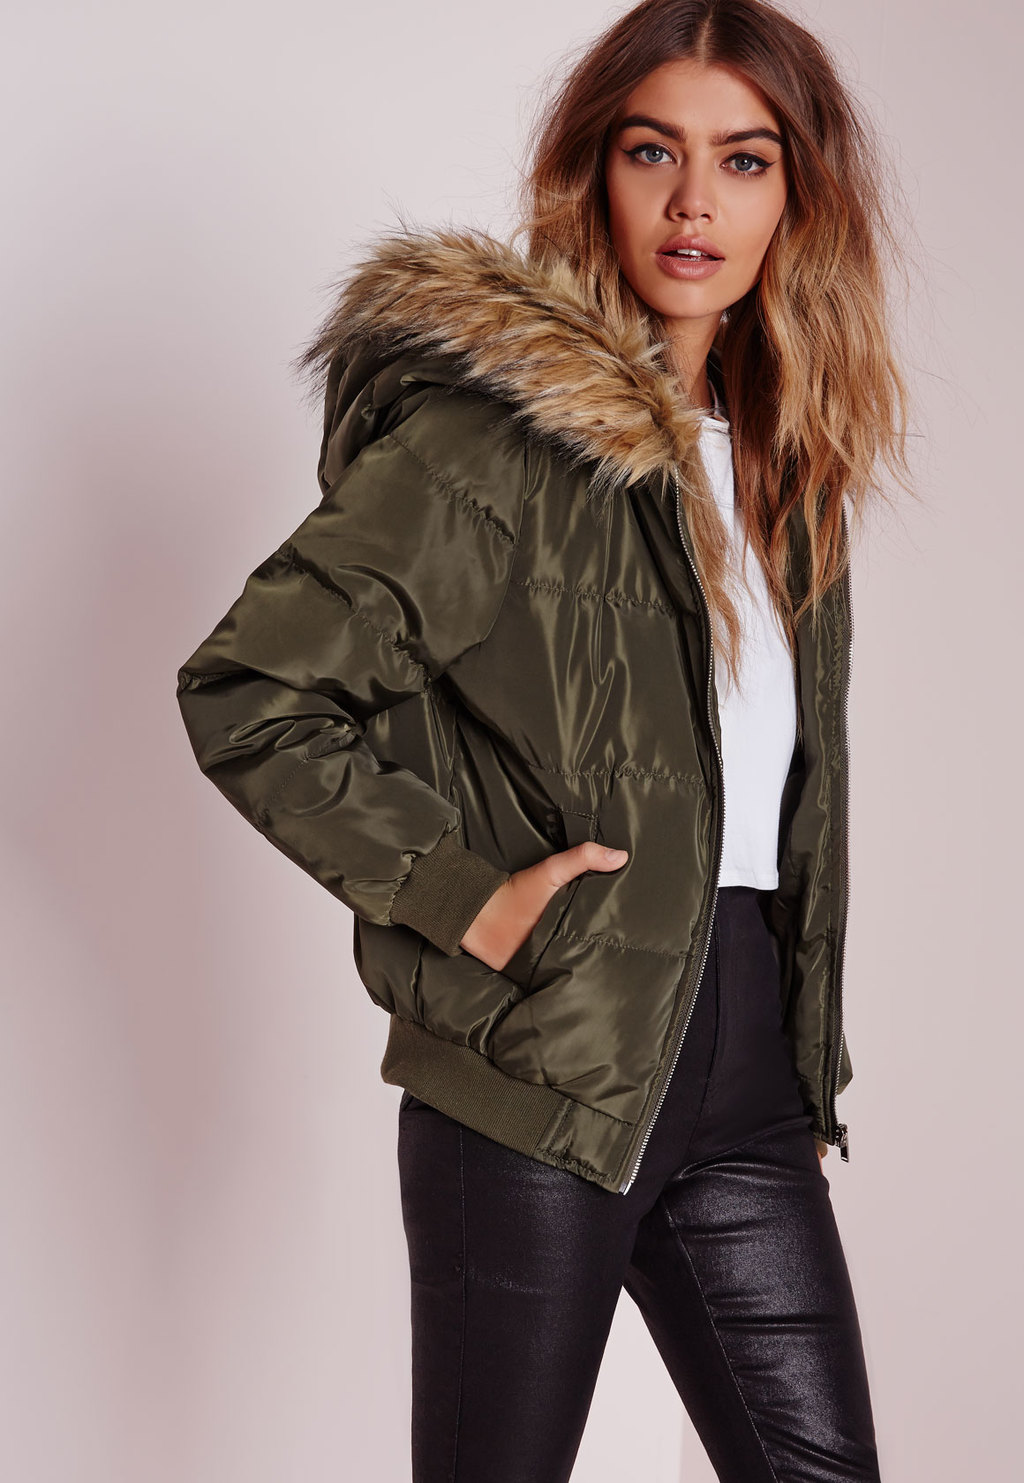 Padded Faux Fur Hood Jacket Khaki, Beige - pattern: plain; length: standard; collar: funnel; fit: loose; style: parka; predominant colour: khaki; occasions: casual; fibres: polyester/polyamide - 100%; sleeve length: long sleeve; sleeve style: standard; texture group: technical outdoor fabrics; collar break: high; pattern type: fabric; embellishment: fur; season: a/w 2015; wardrobe: highlight